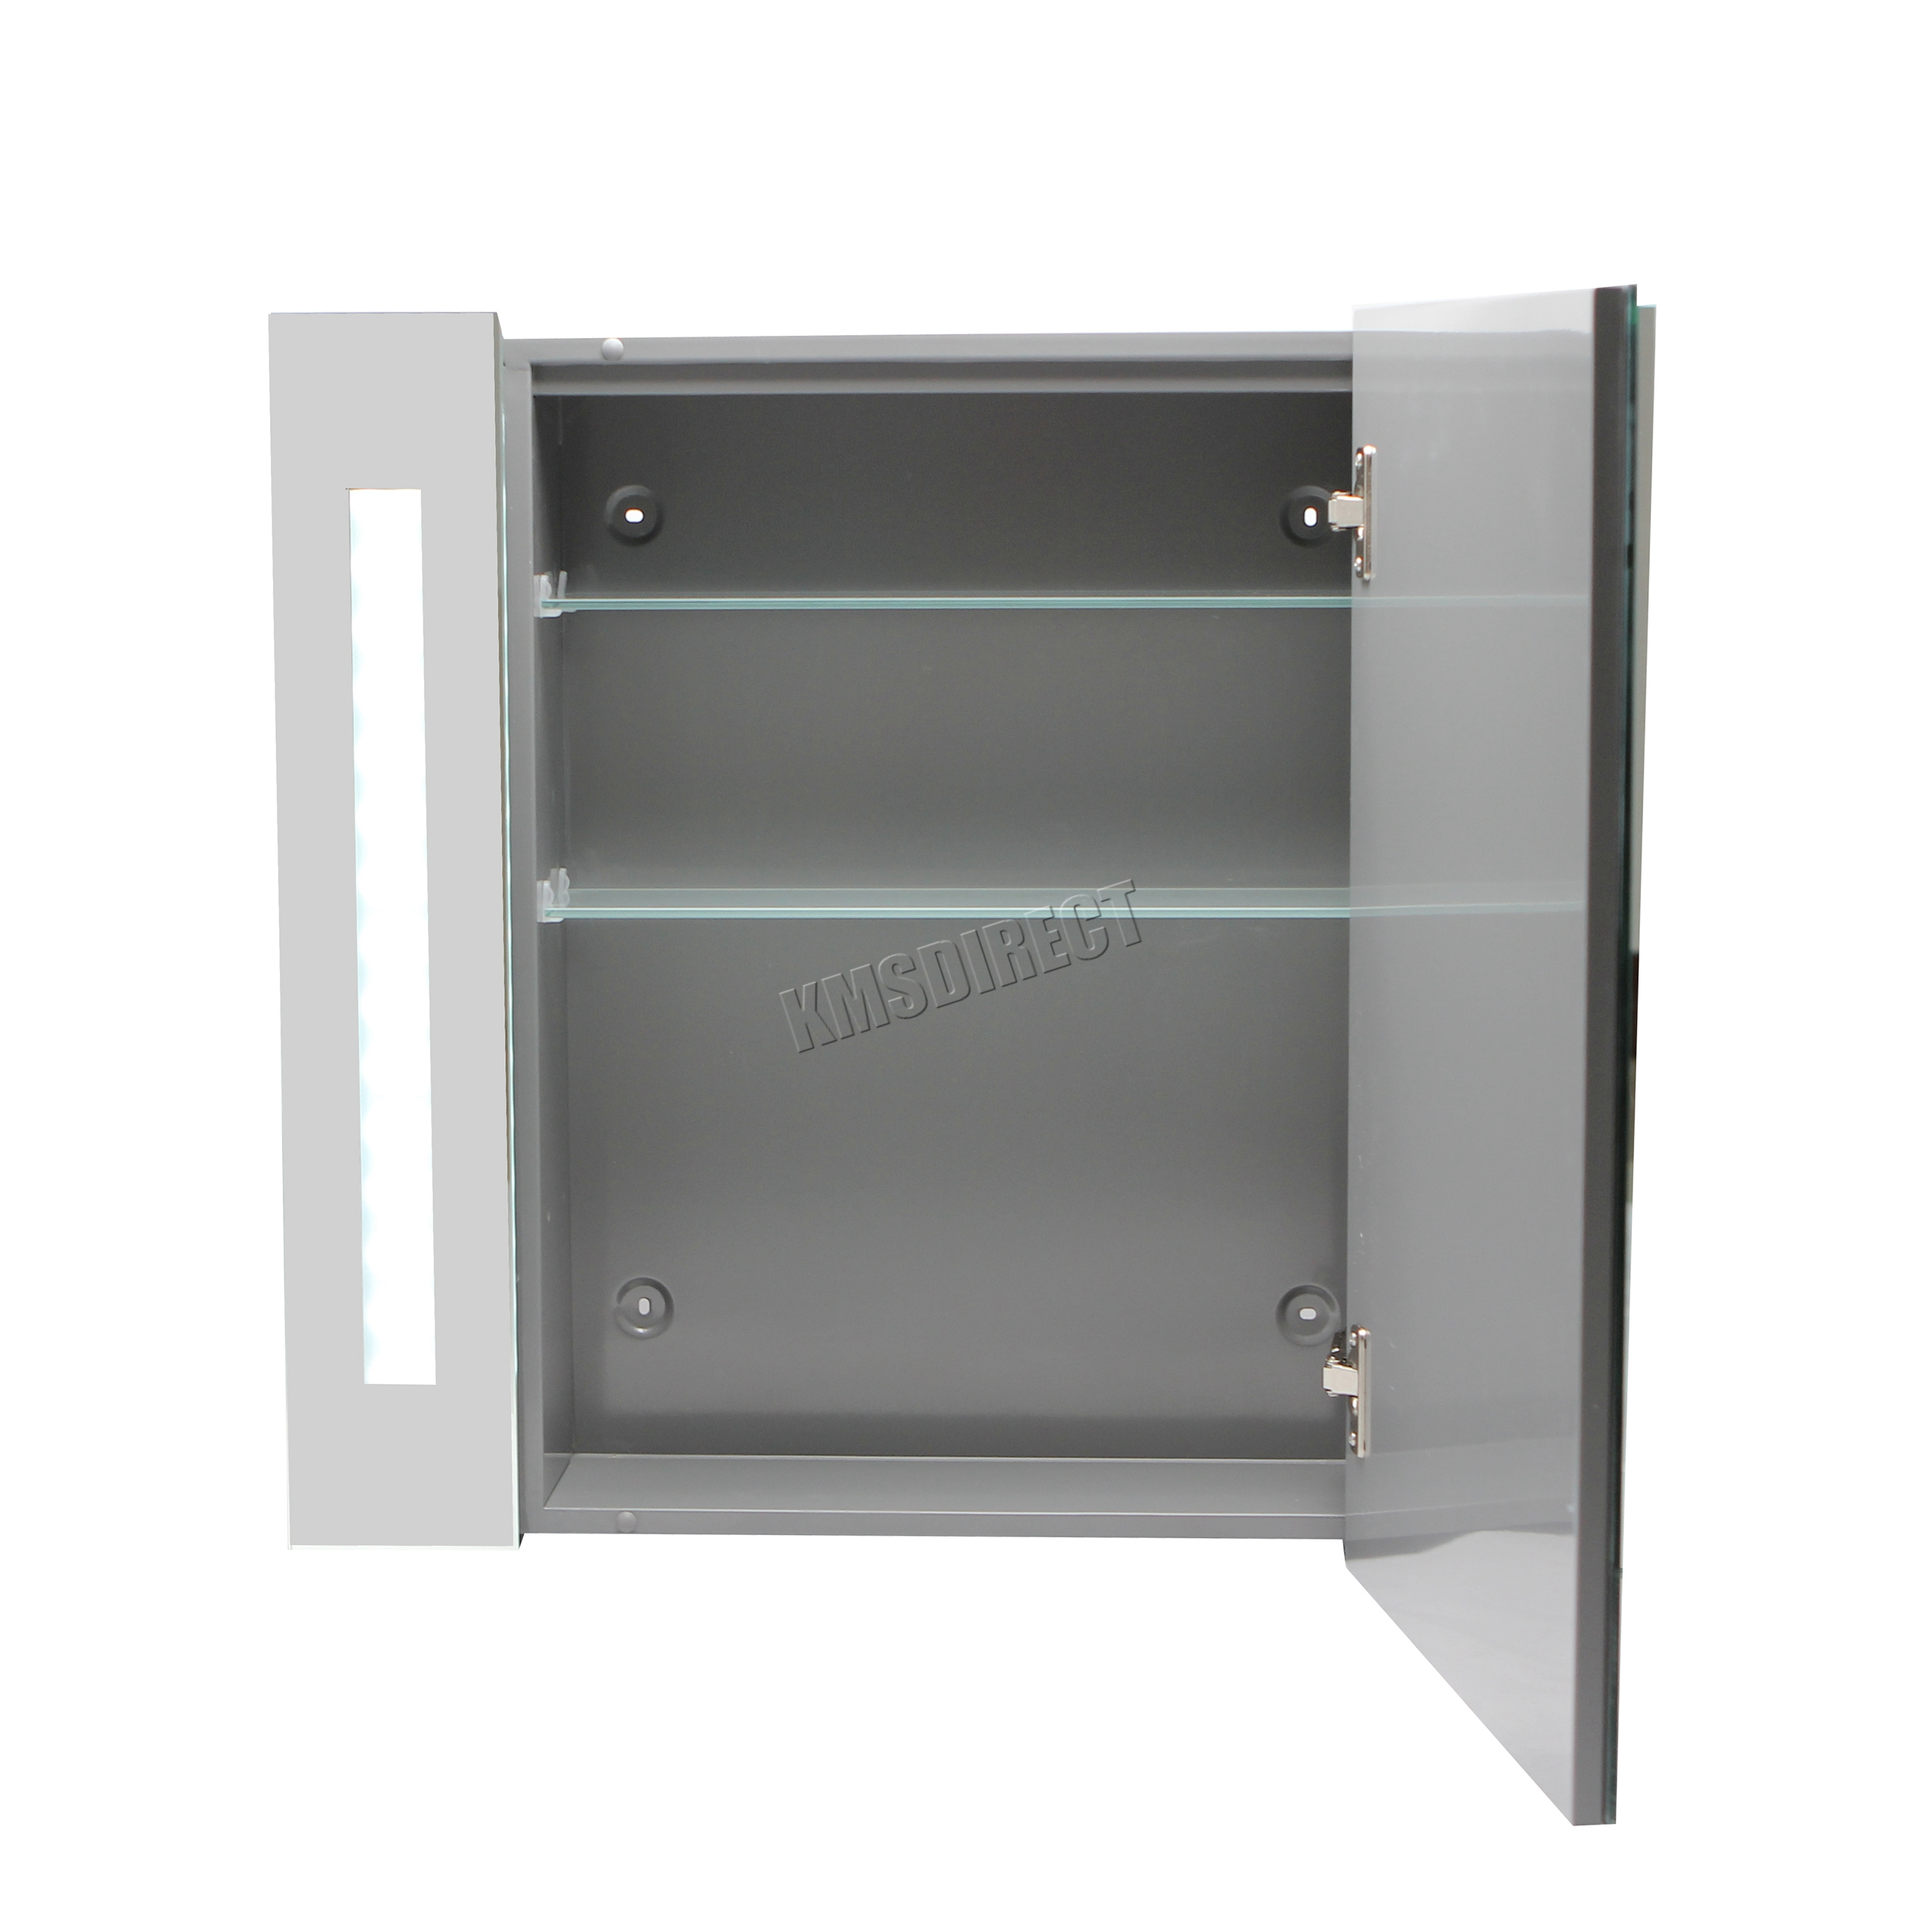 Foxhunter led illuminated mirror bathroom cabinet steel storage cupboard sensor ebay for Bathroom mirror cupboard